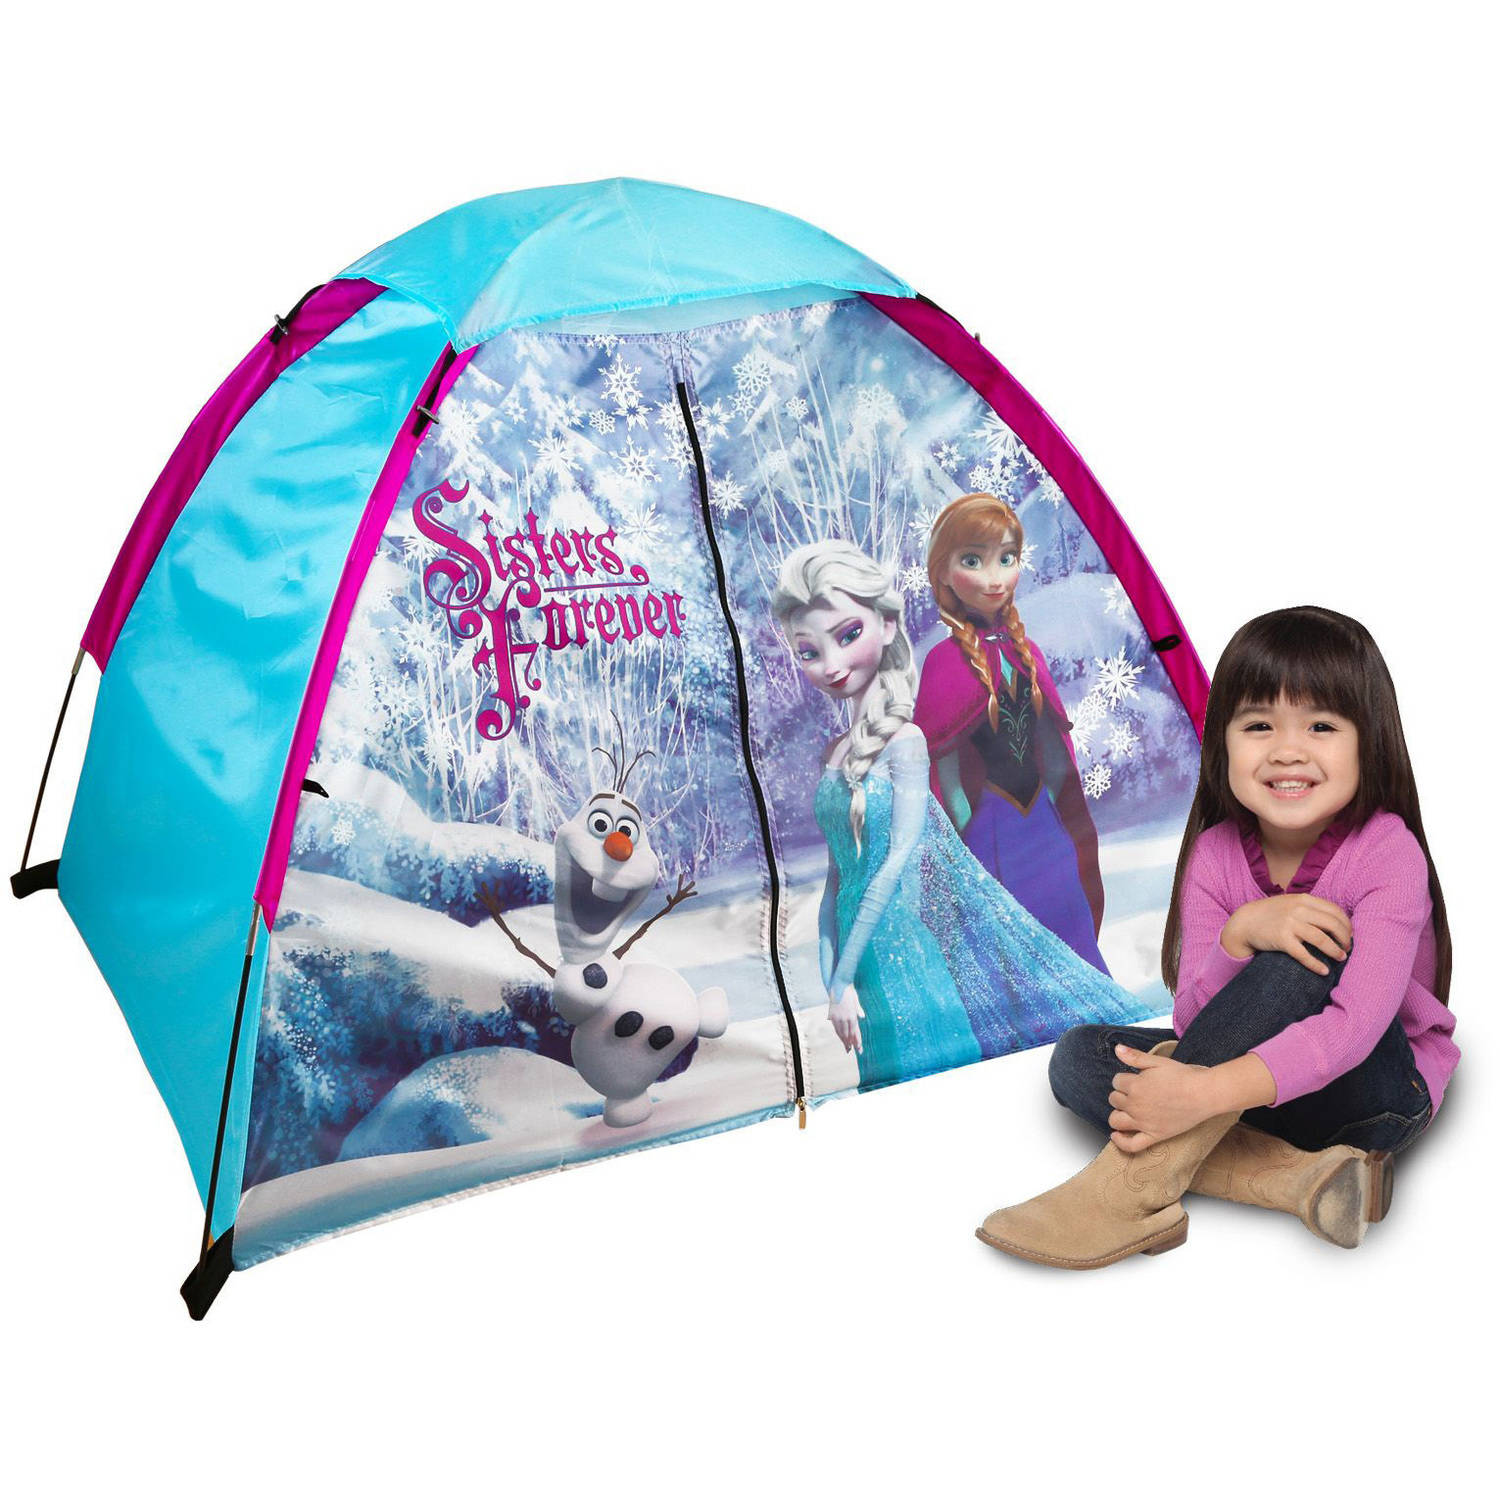 Disney Frozen 2-Pole Kids Dome Tent  sc 1 st  Walmart & Disney Frozen 2-Pole Kids Dome Tent - Walmart.com